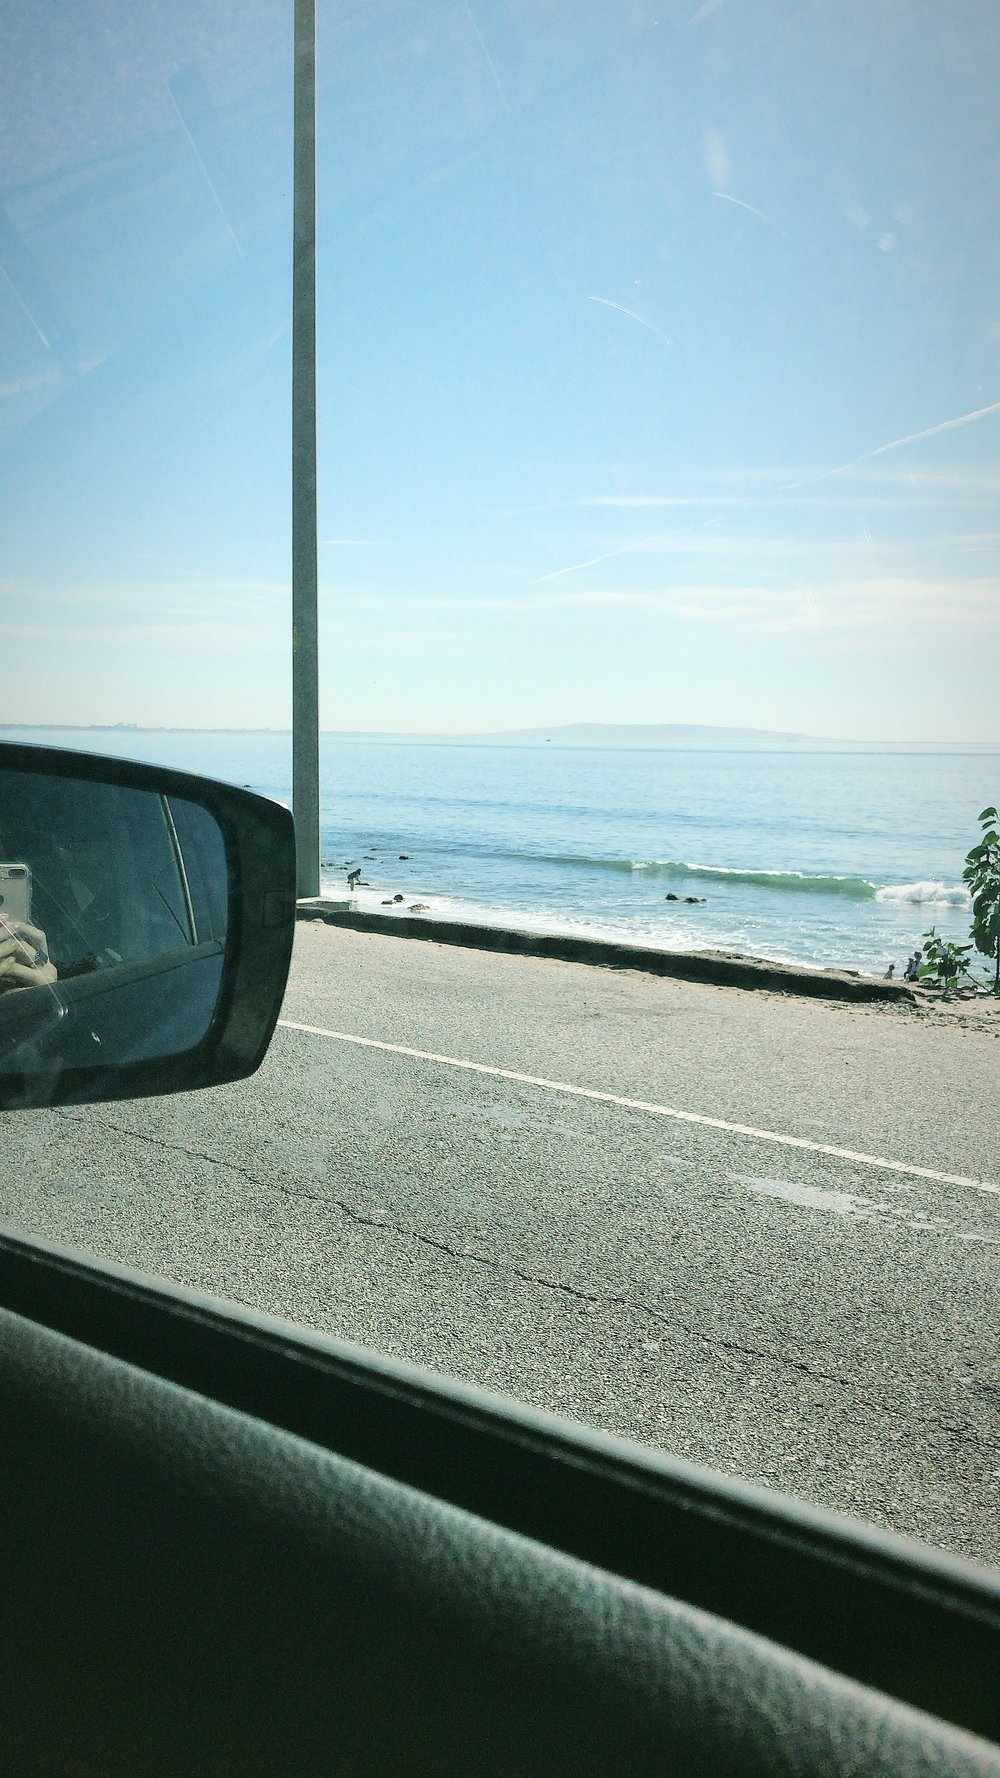 I love our drive to and from Malibu every week. It's the sweetest.